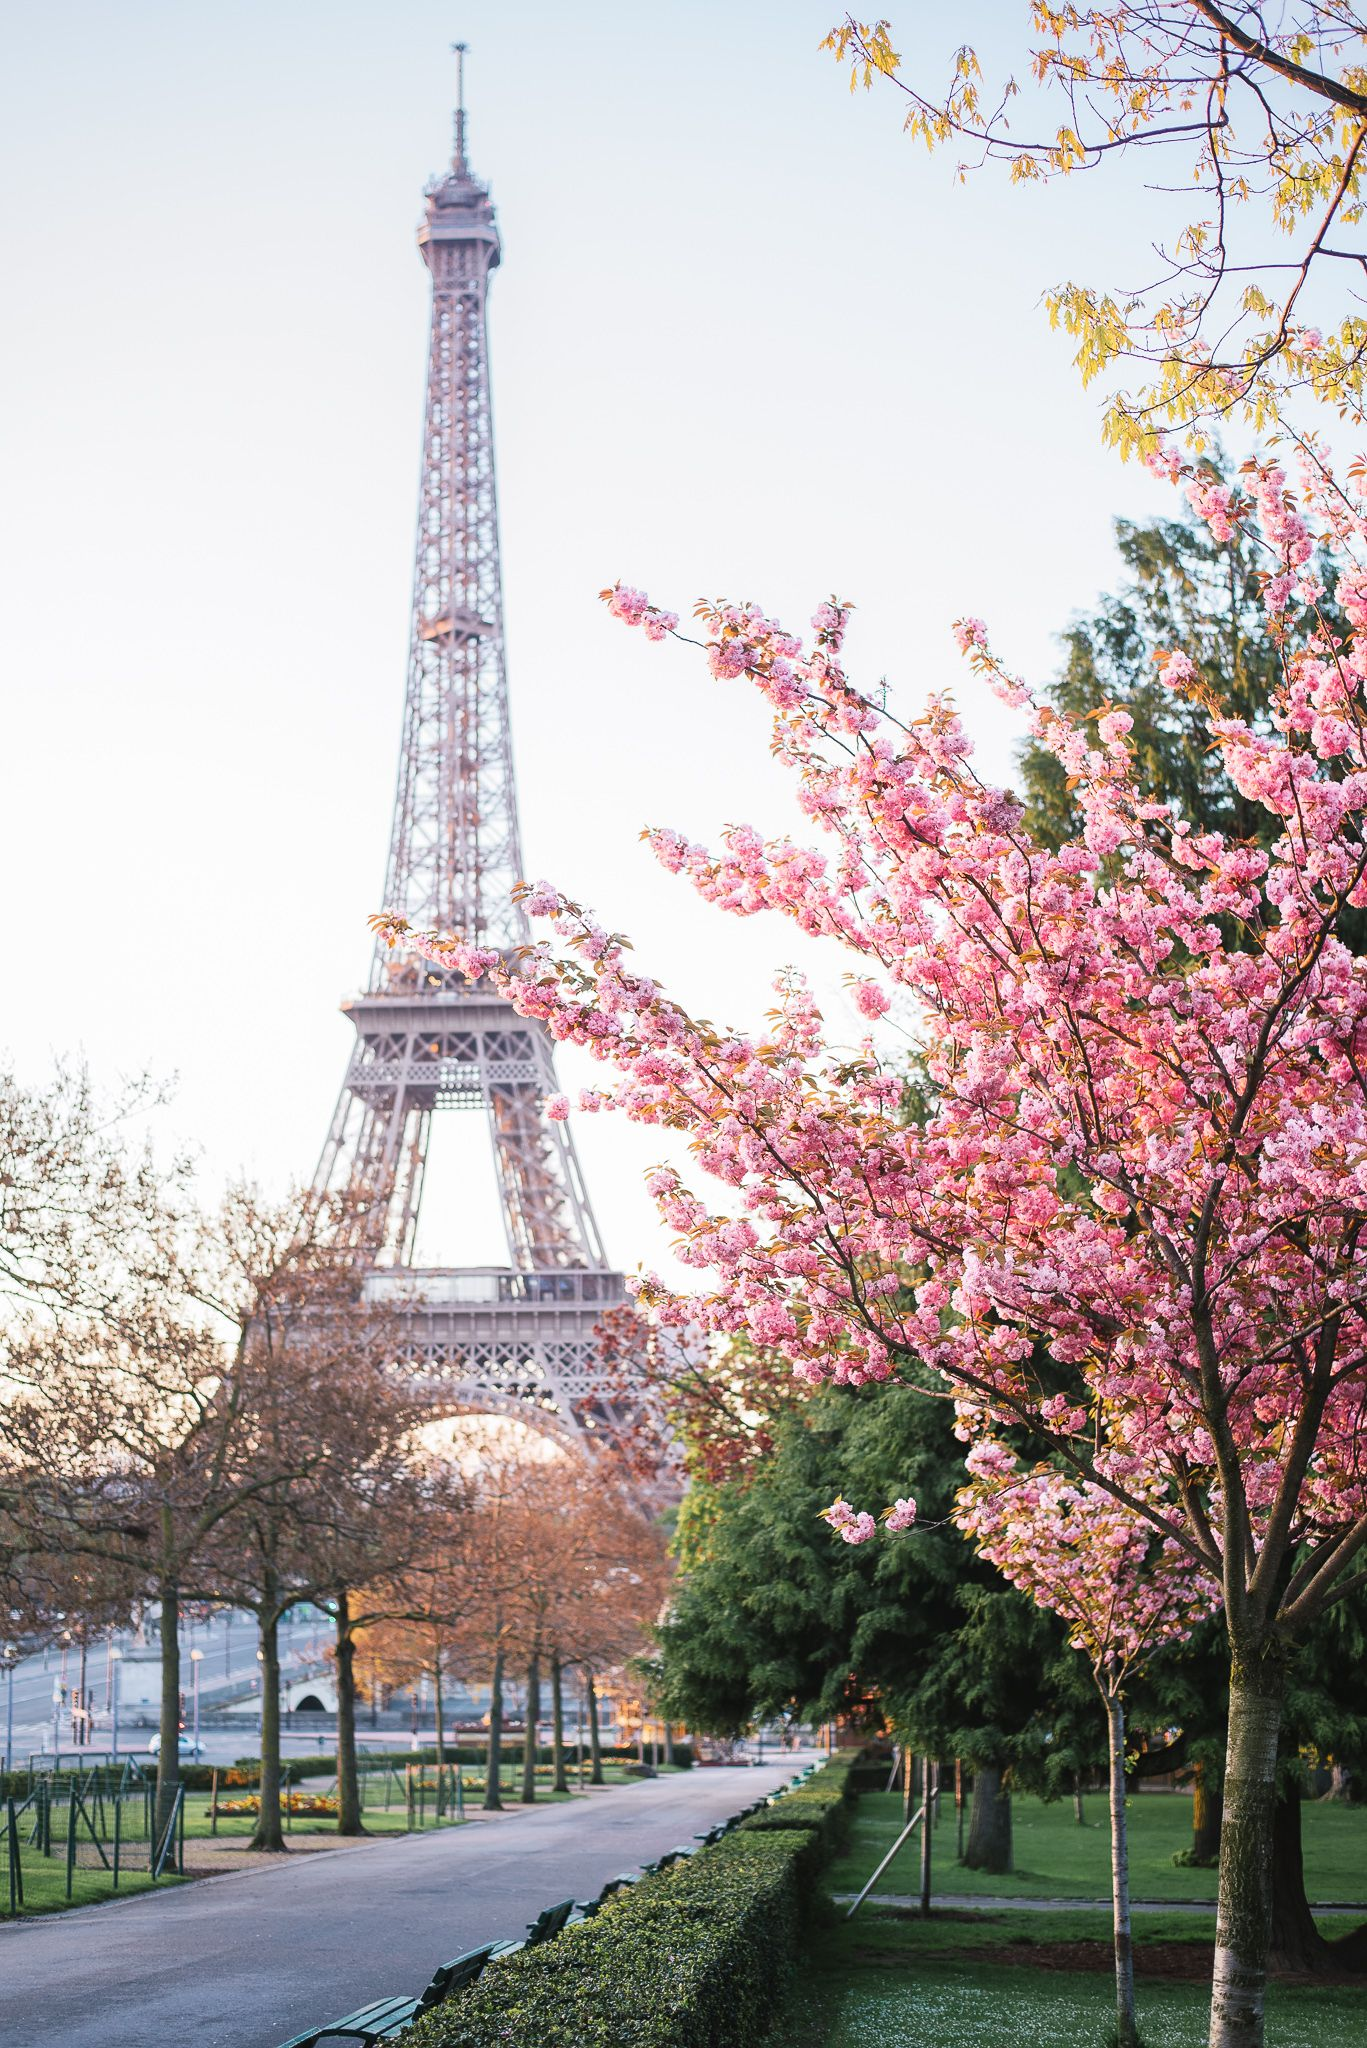 Paris in spring is Cherry